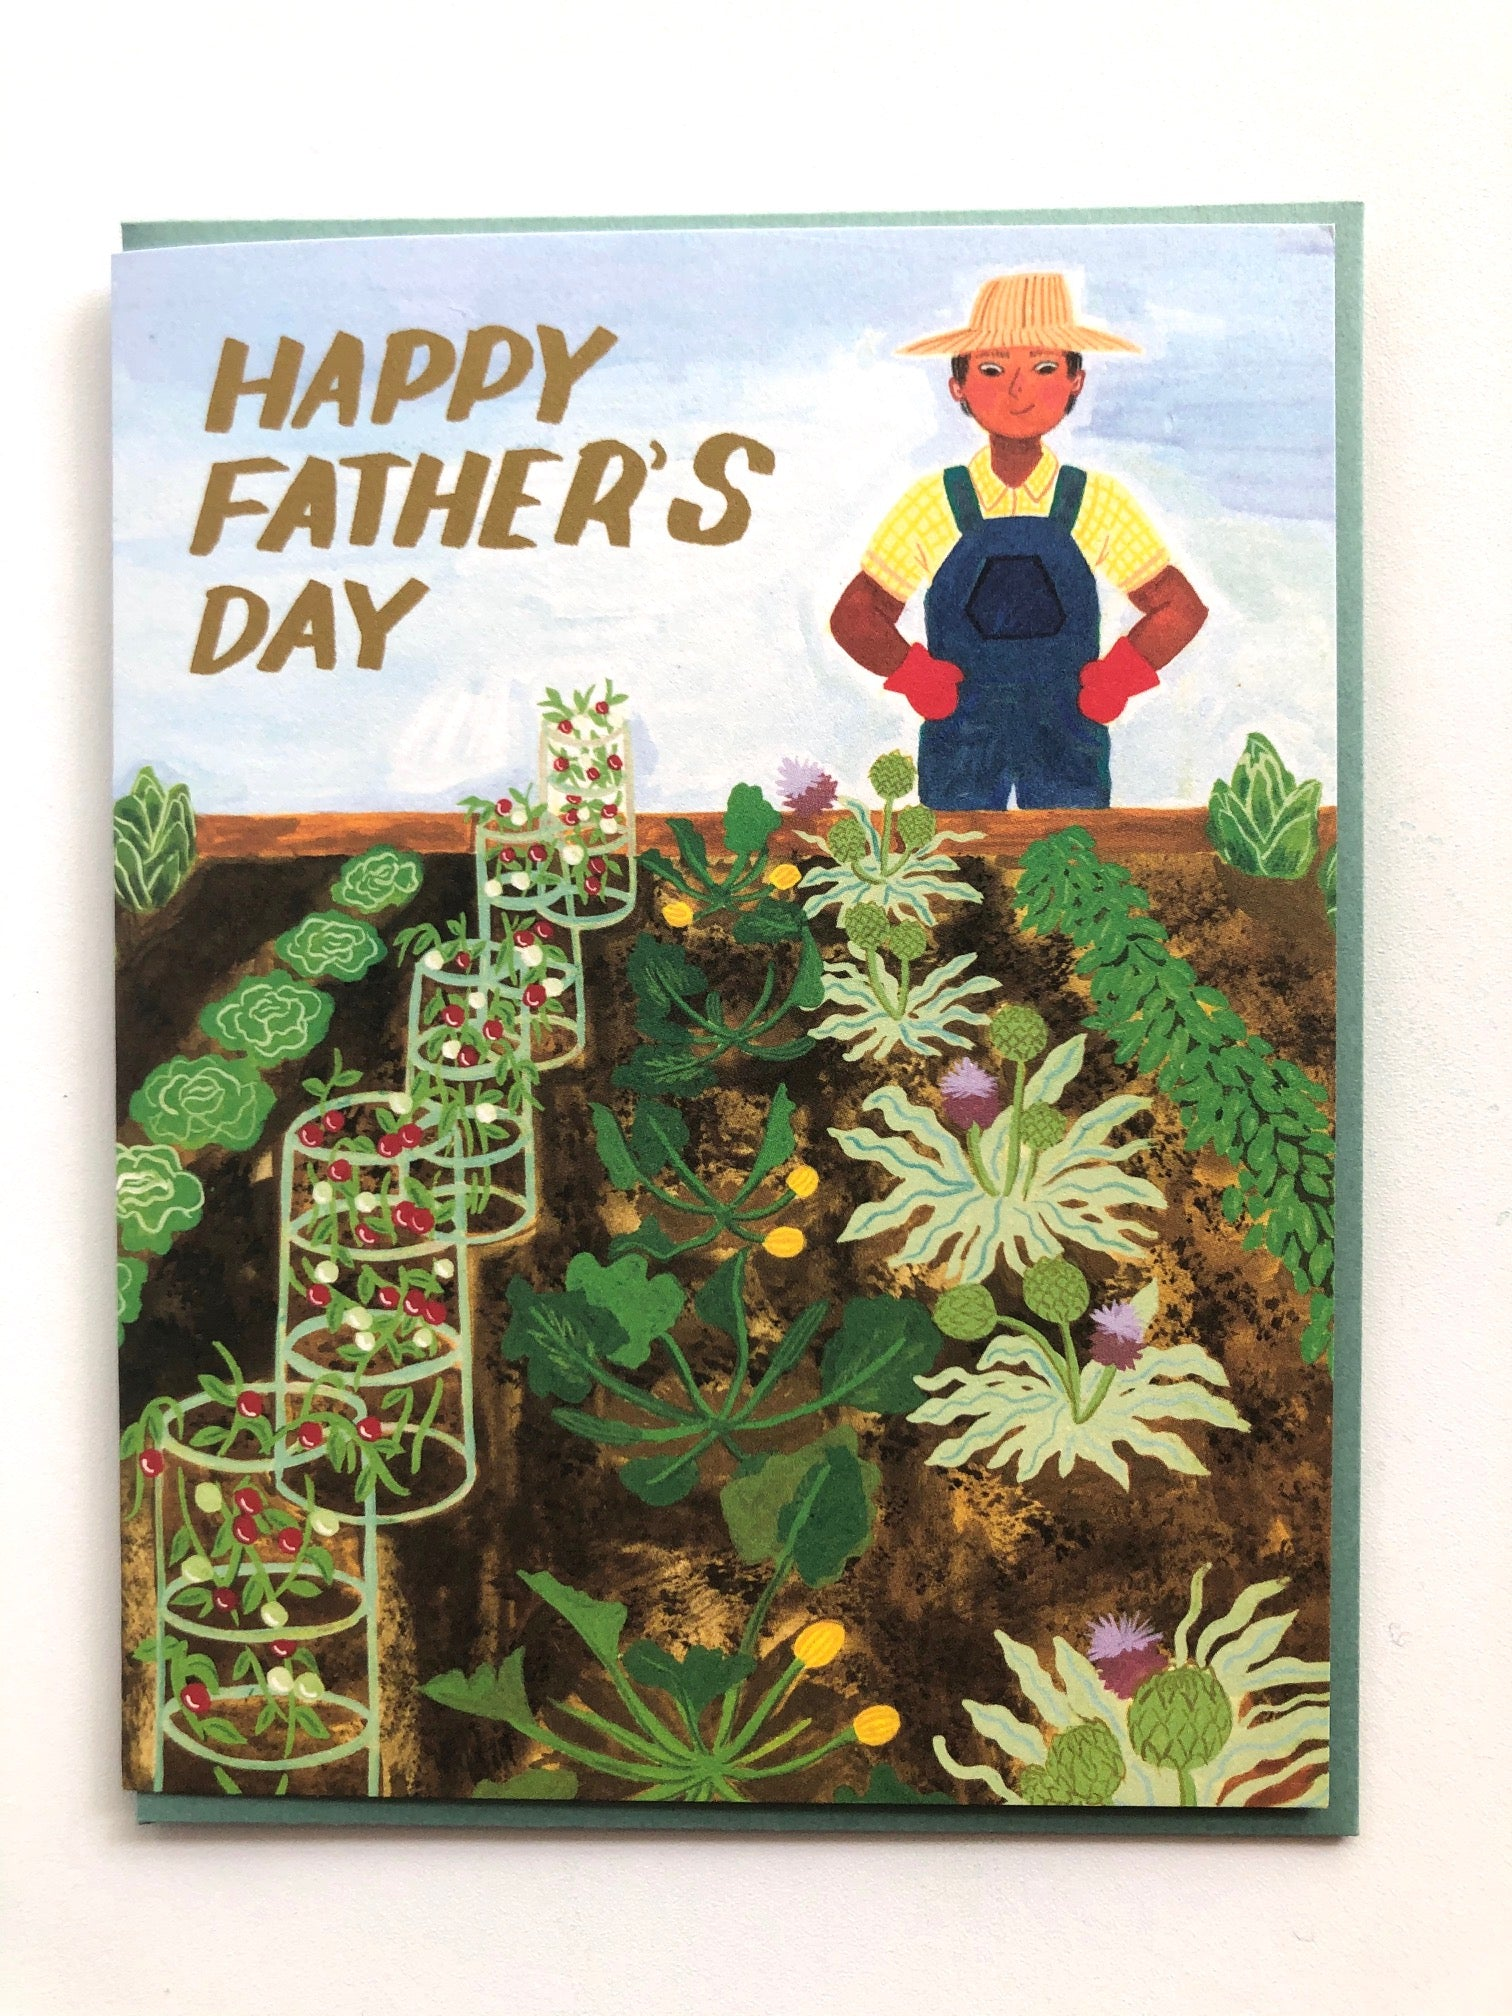 Happy Father's Day Farmer Card